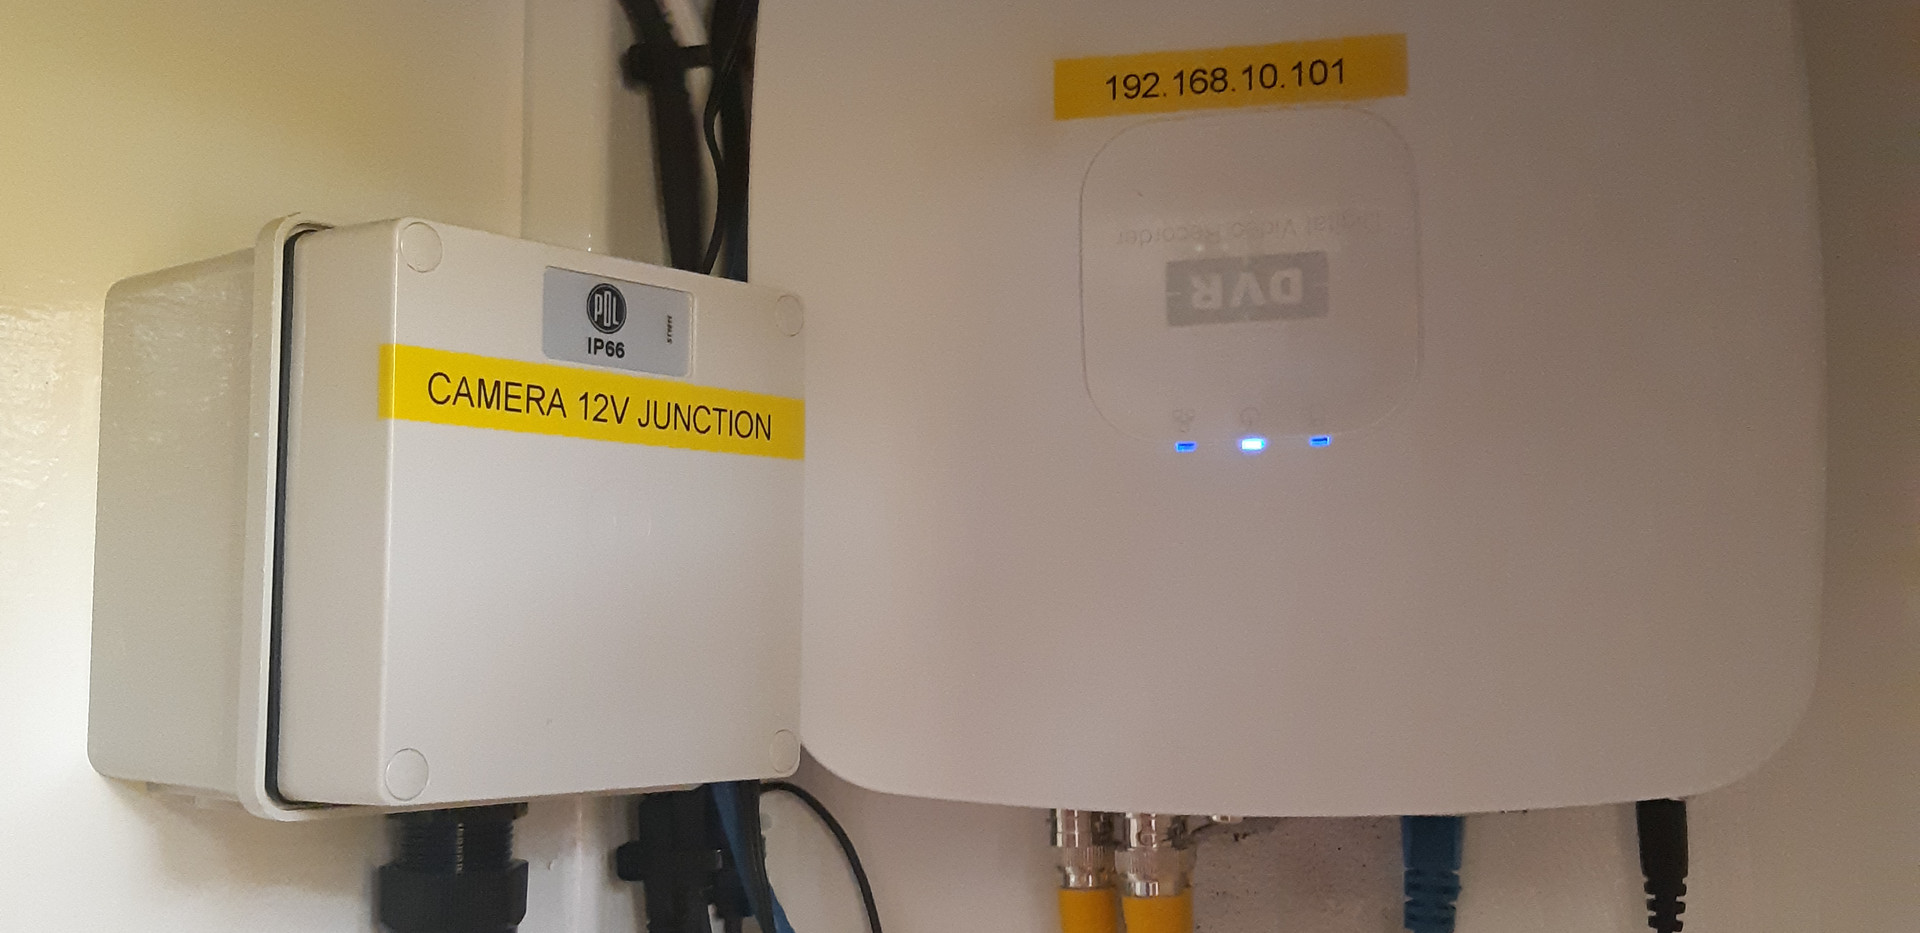 CCTV and network router